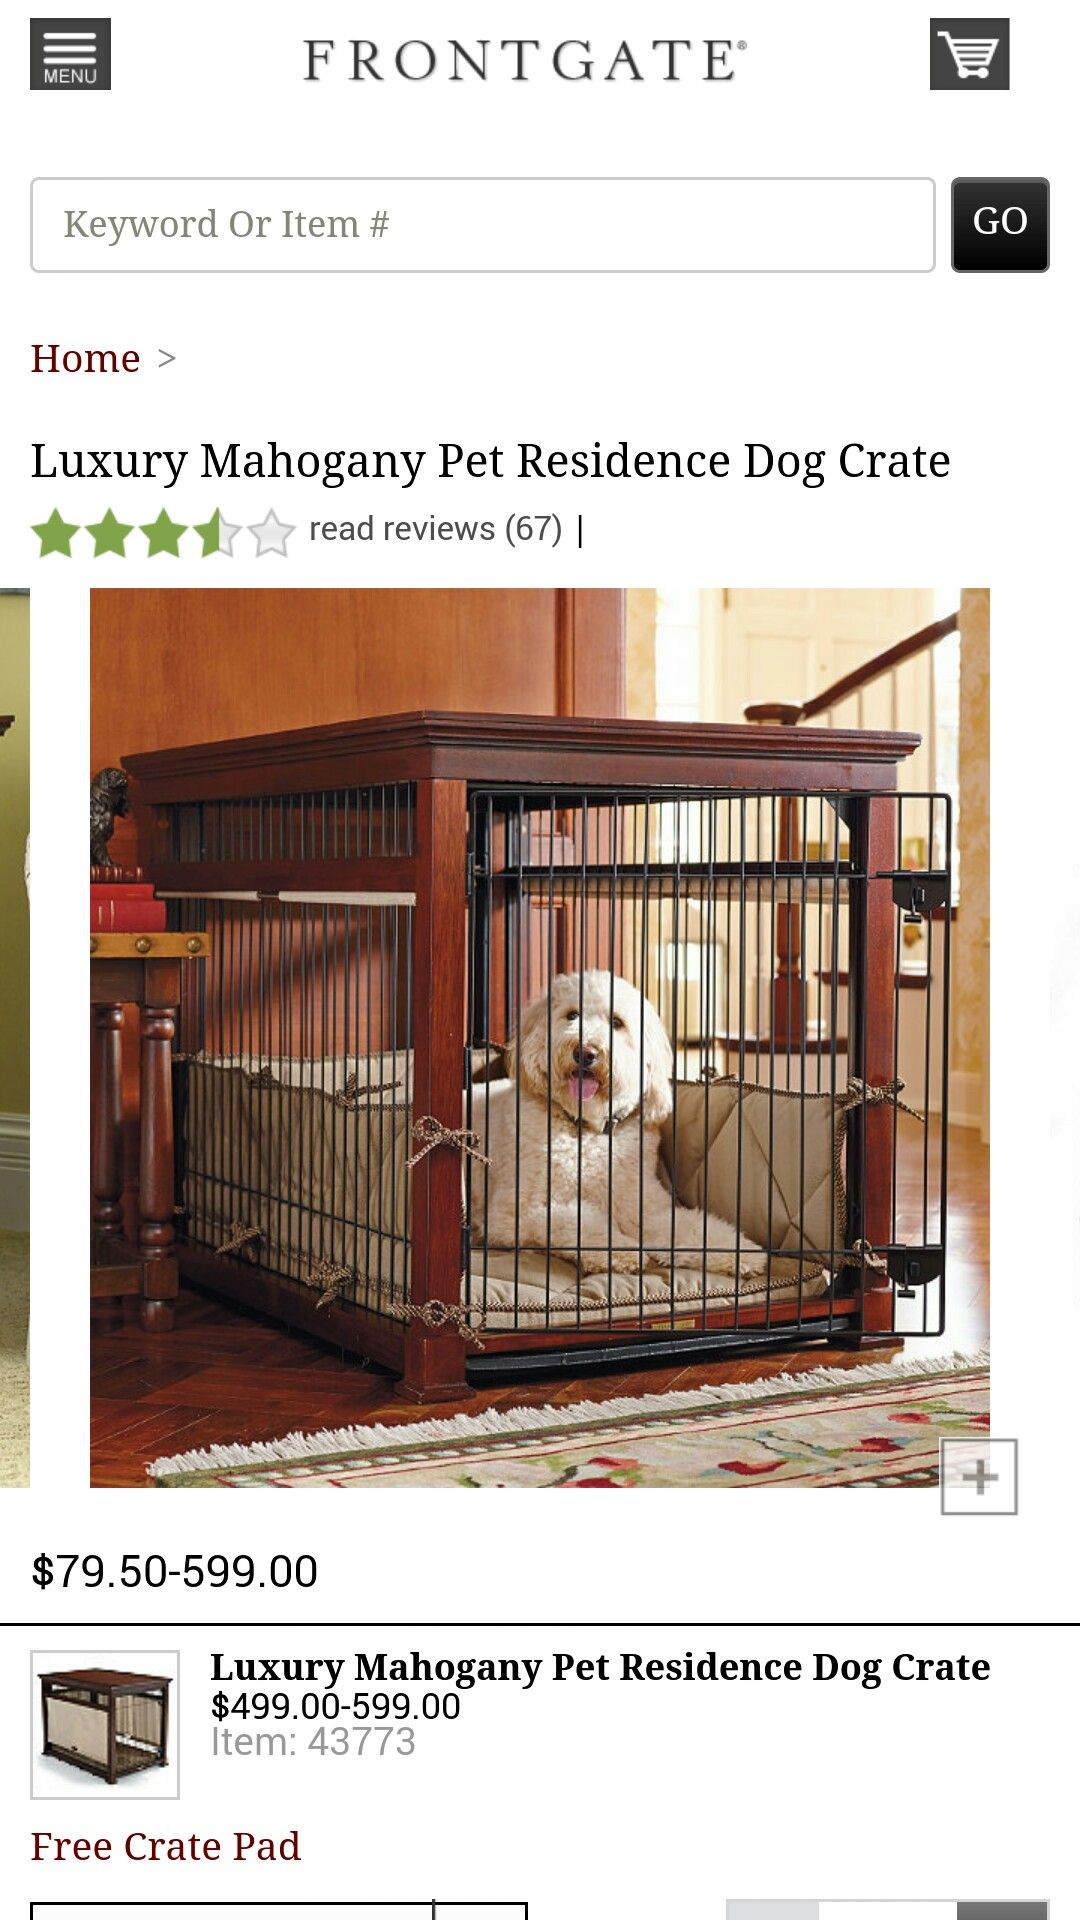 Pin By Jennifer Bedsole On Pets Dog Crate Pets Frontgate